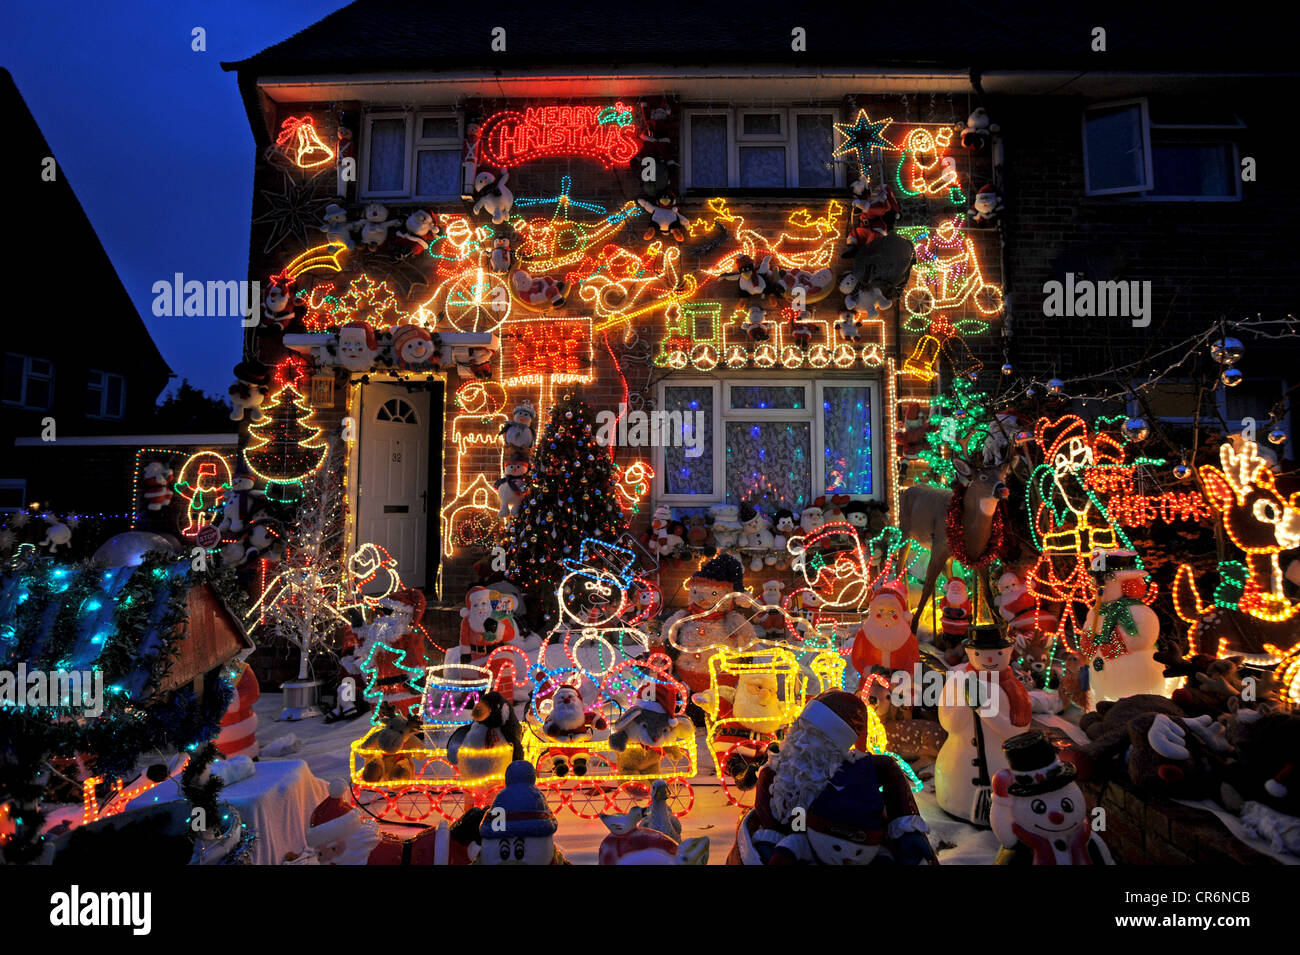 Hundreds Of Christmas Lights Decorate The Outside Of A House In Brighton